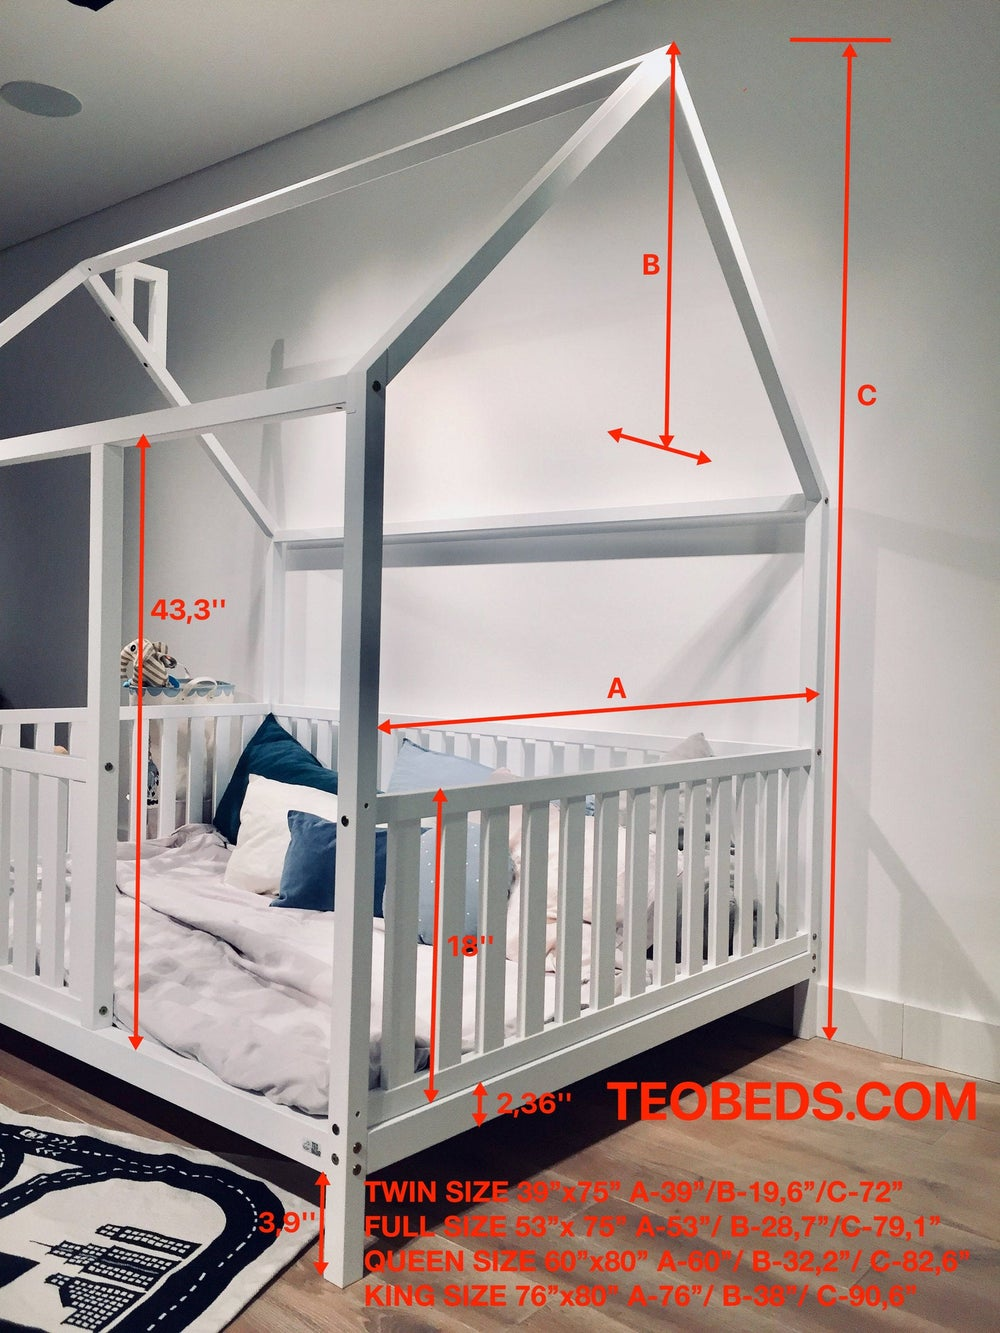 TWIN SIZE BED 39''x75'' with bed rails Teo Beds FREE SHIPPING